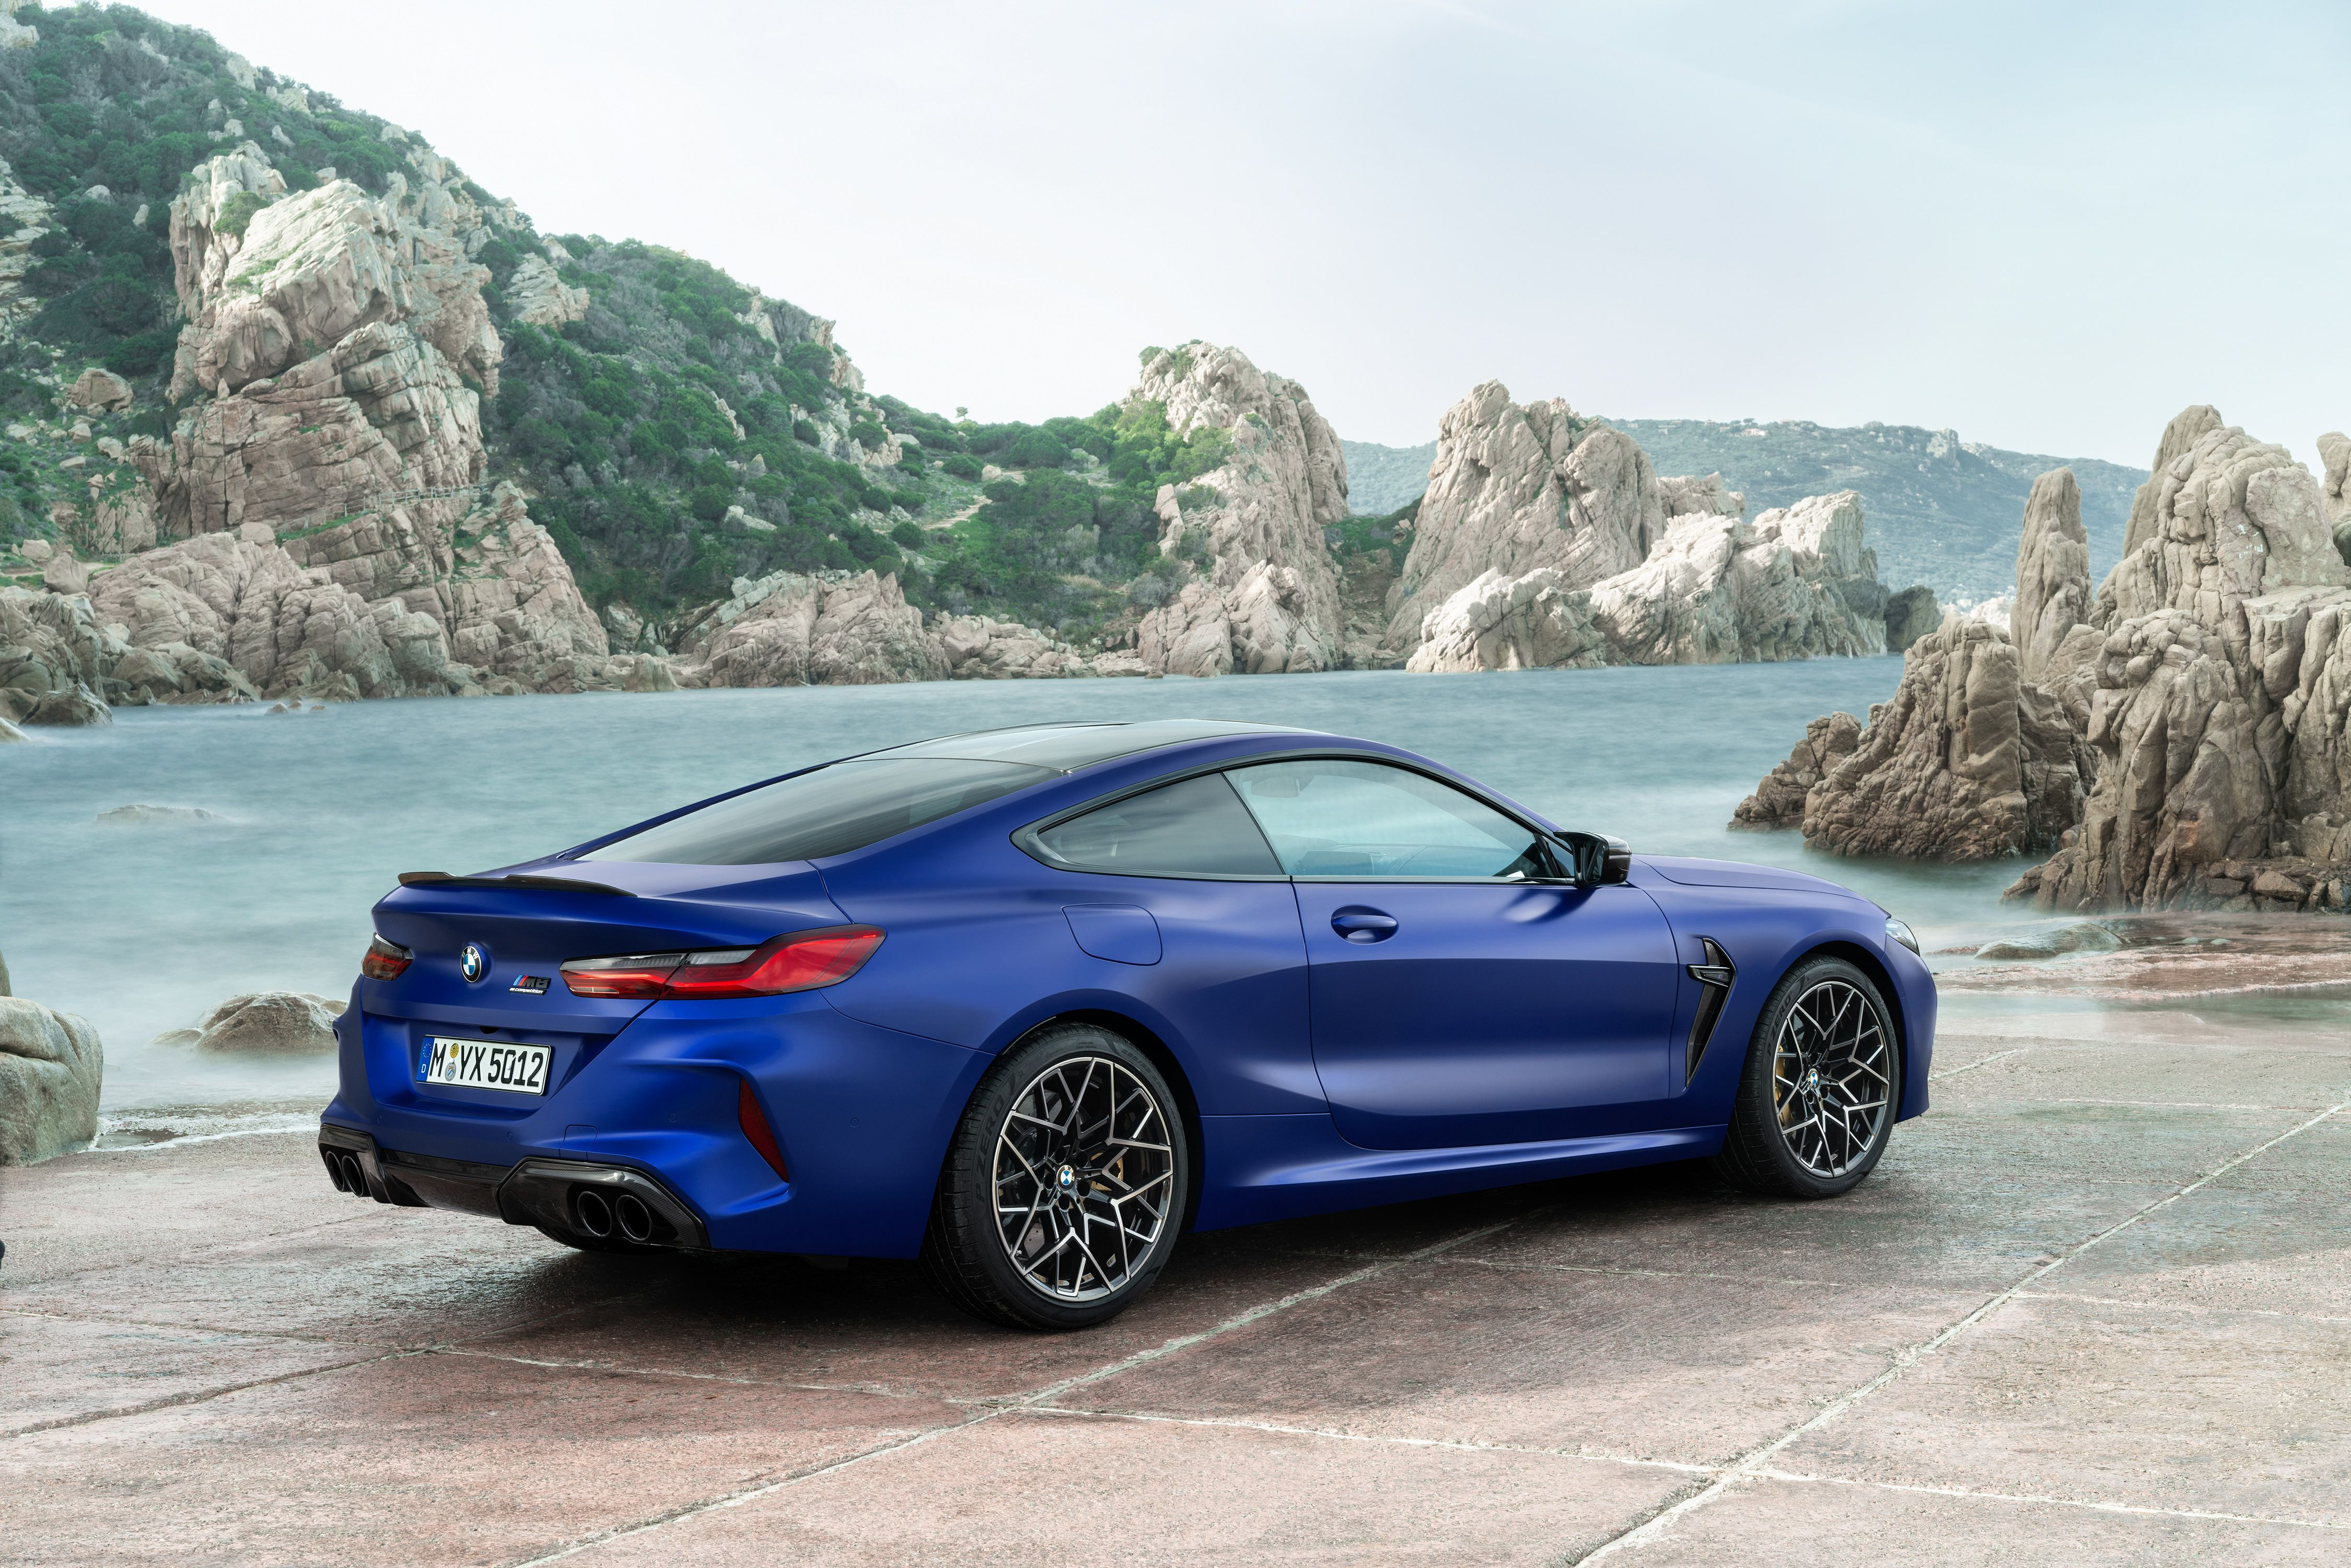 The 2020 Bmw M8 Is The 617 Hp High Performance 8 Series We Ve Been